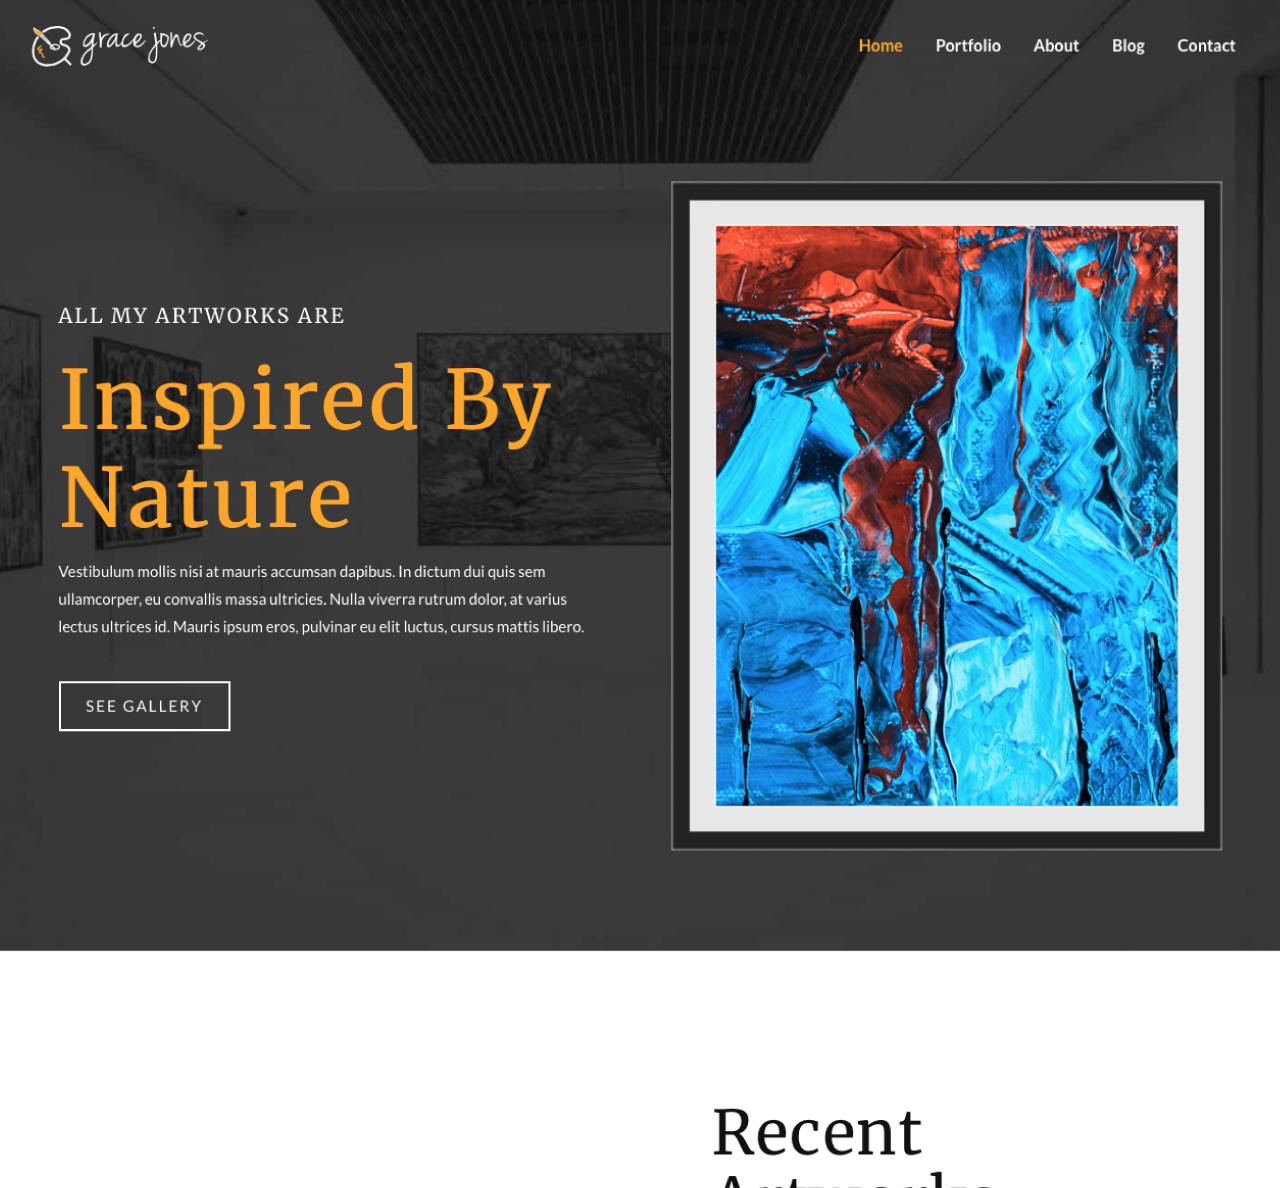 Center Image of an Artist Story Website